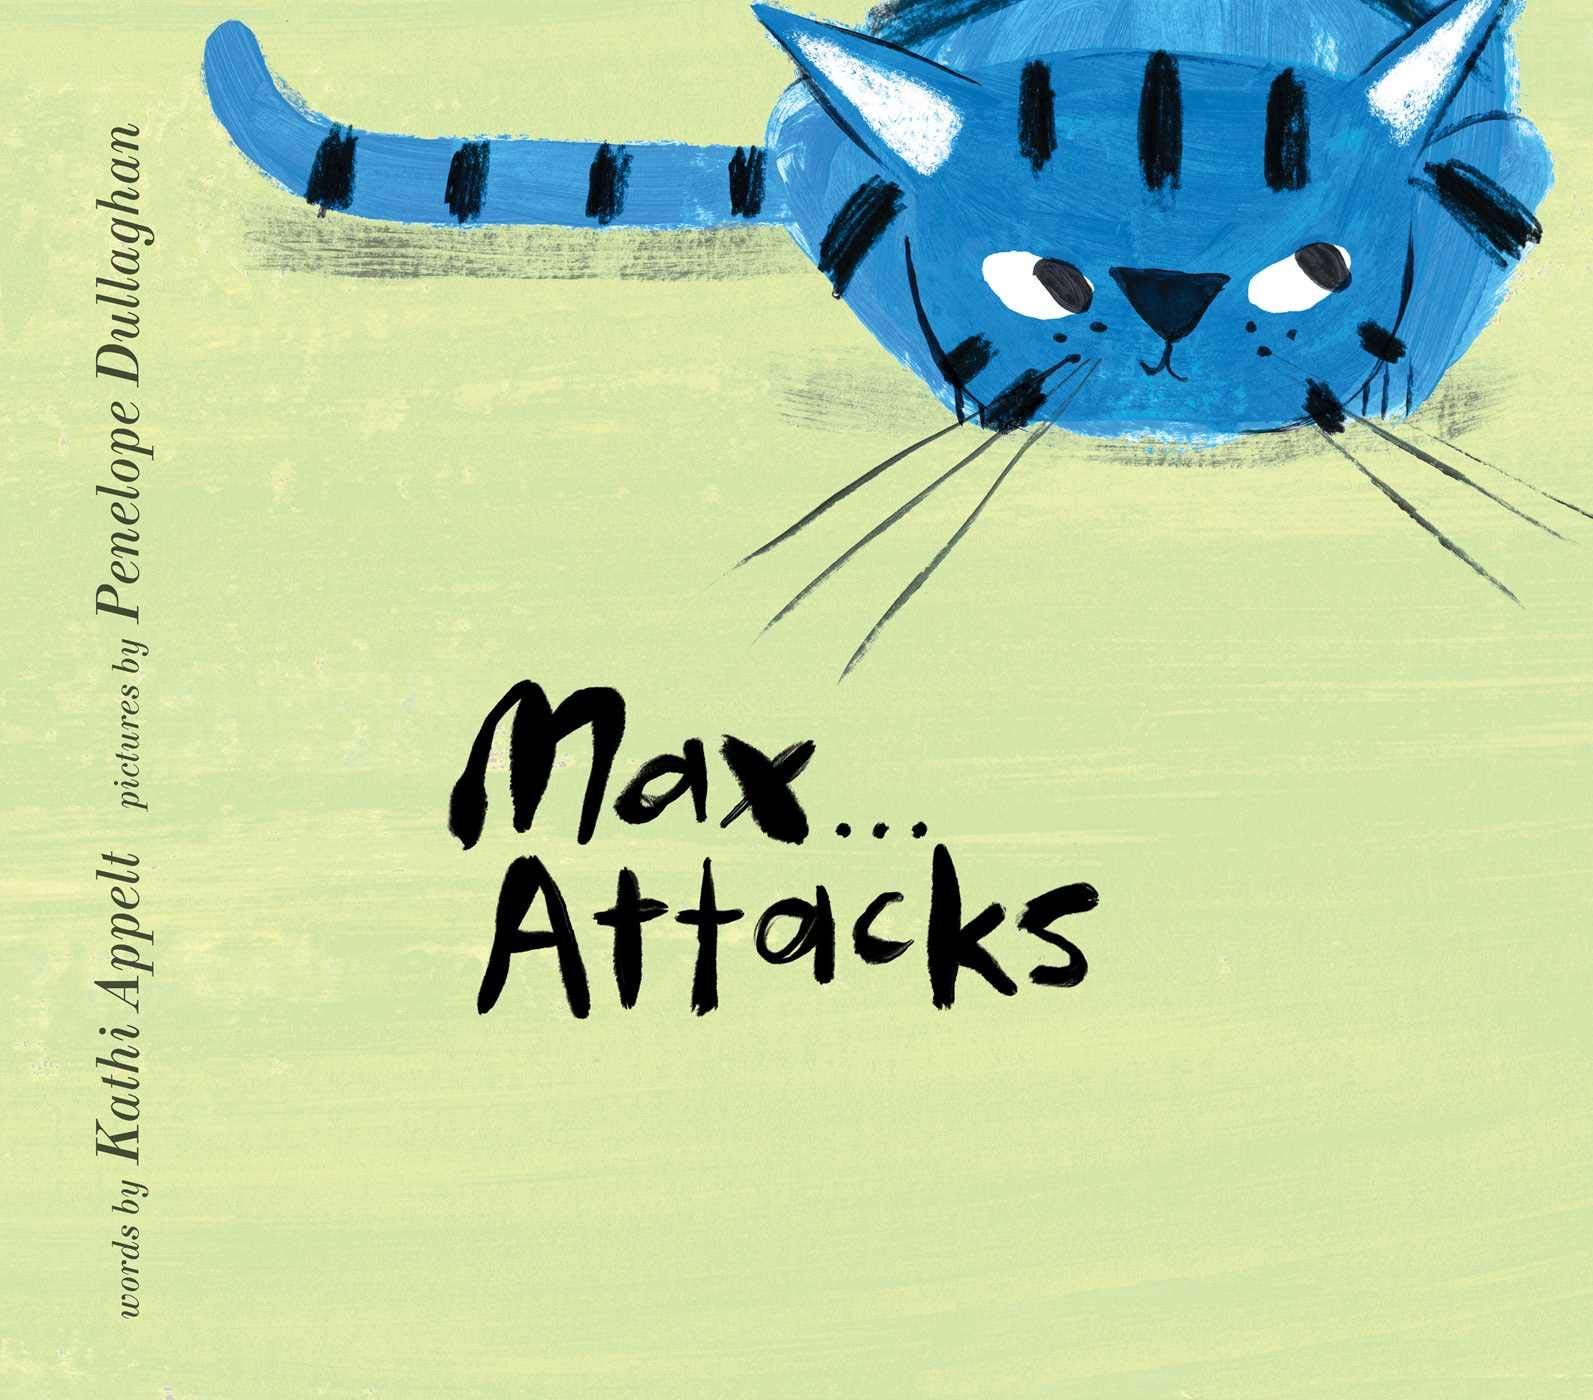 Max... Attacks book cover